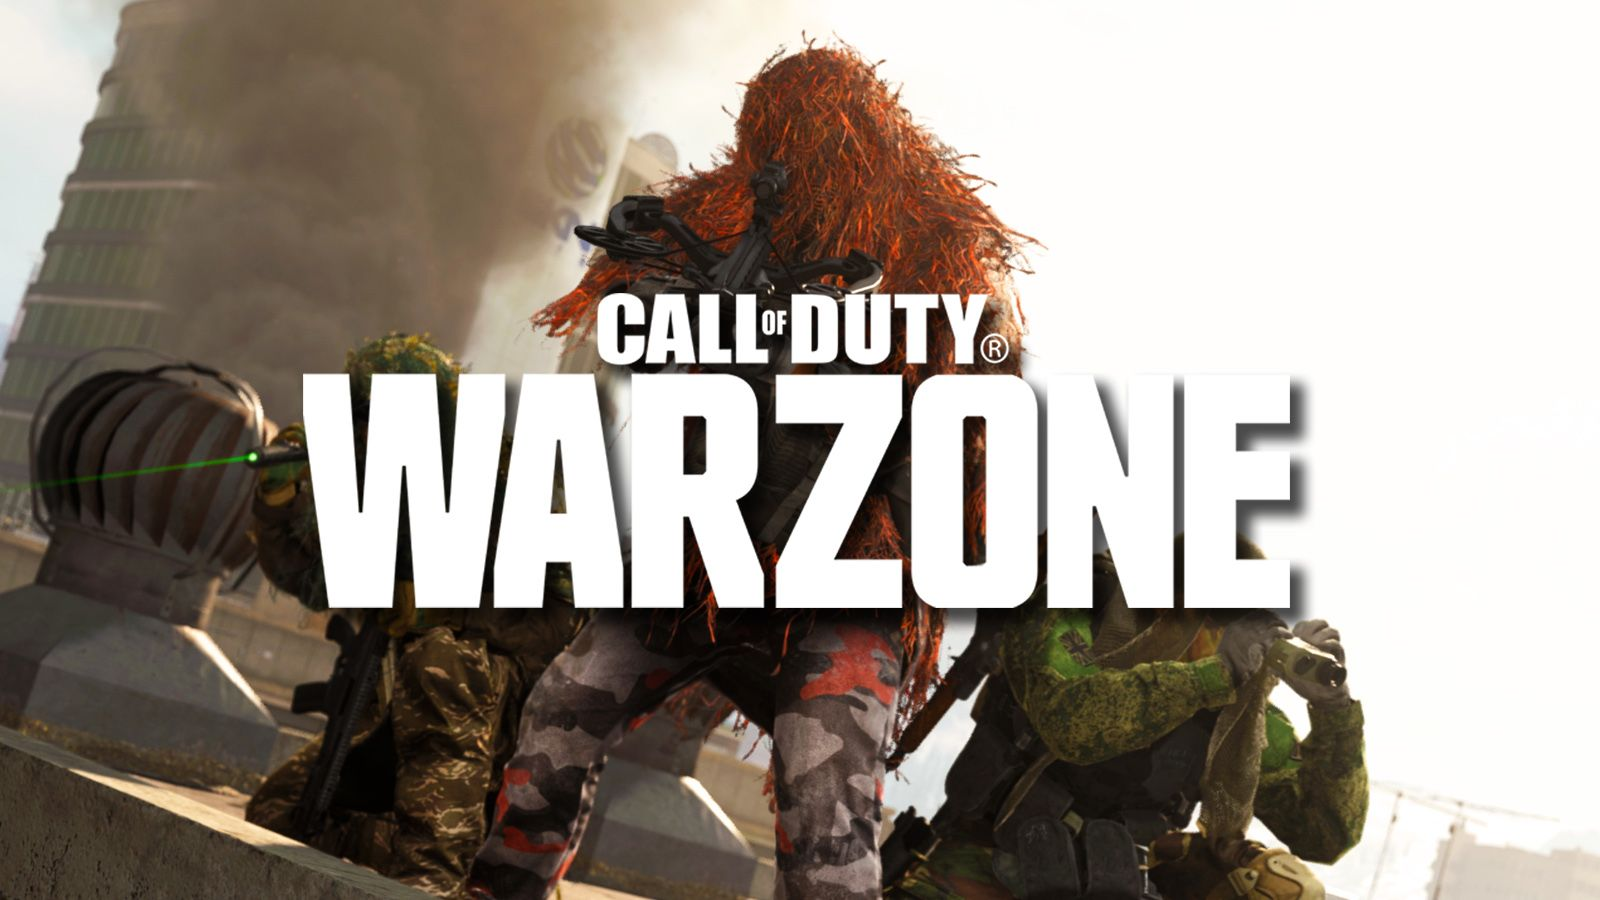 Call Of Duty Warzone Wallpapers   Top Call Of Duty Warzone 1600x900